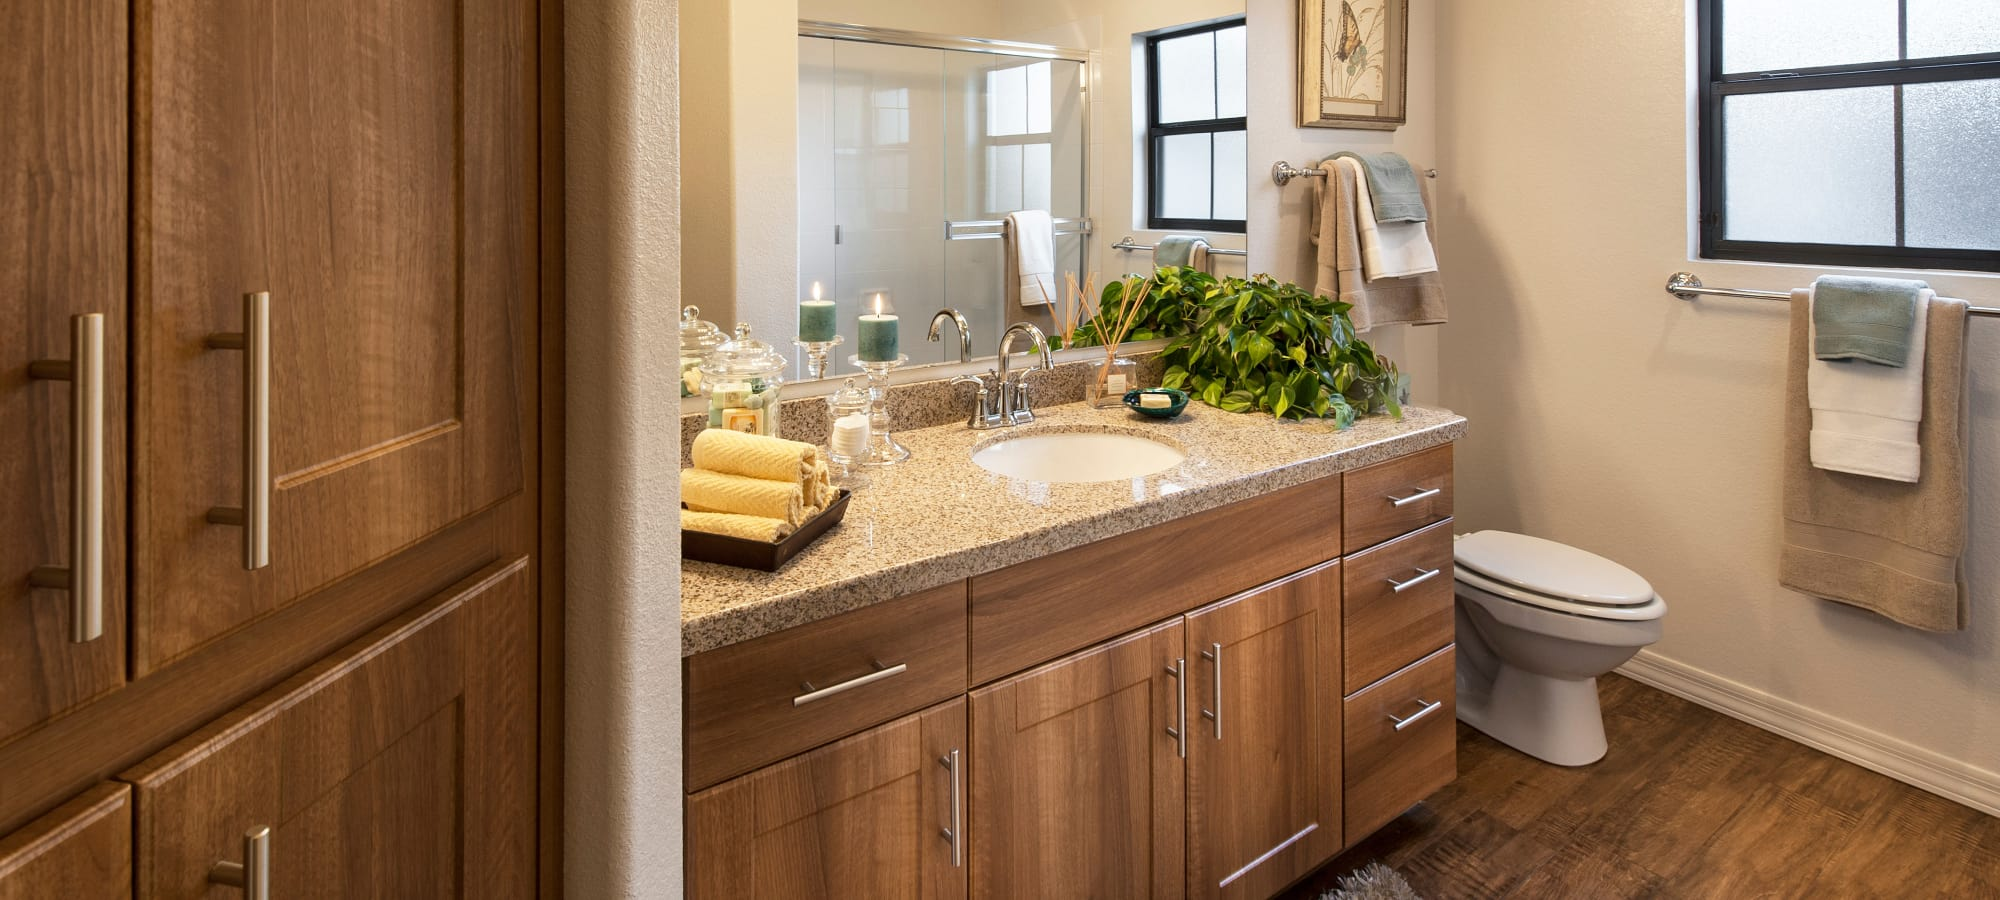 Luxurious bathroom with wood cabinets in model home at San Capella in Tempe, Arizona